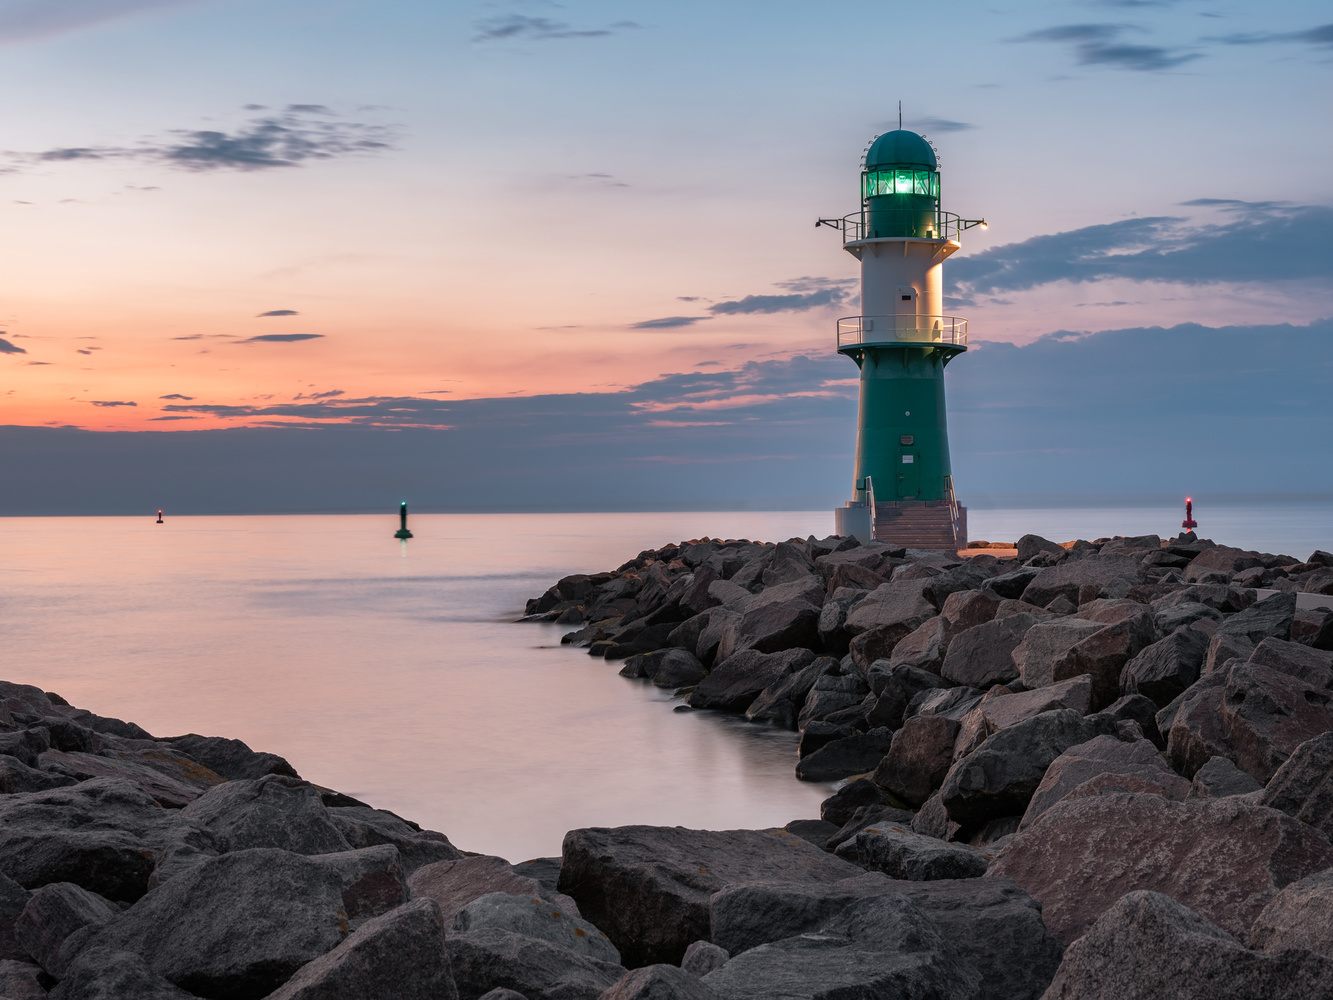 At The Green Lighthouse by Alexander Meier